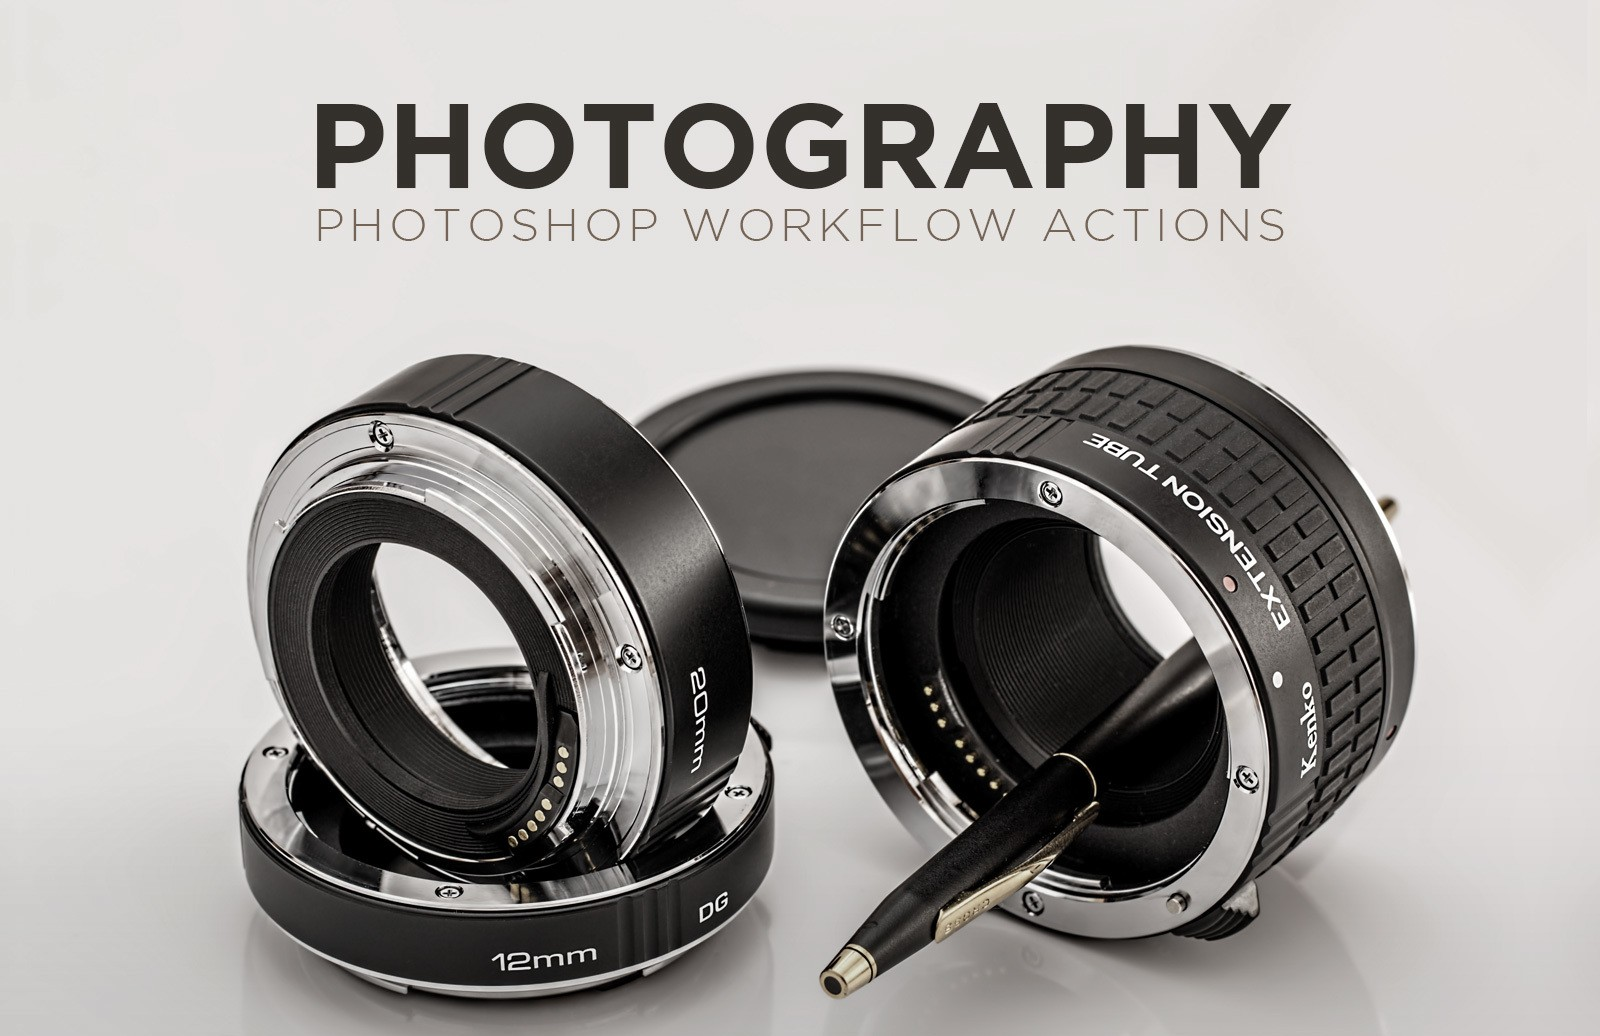 Photography Photoshop Workflow Actions